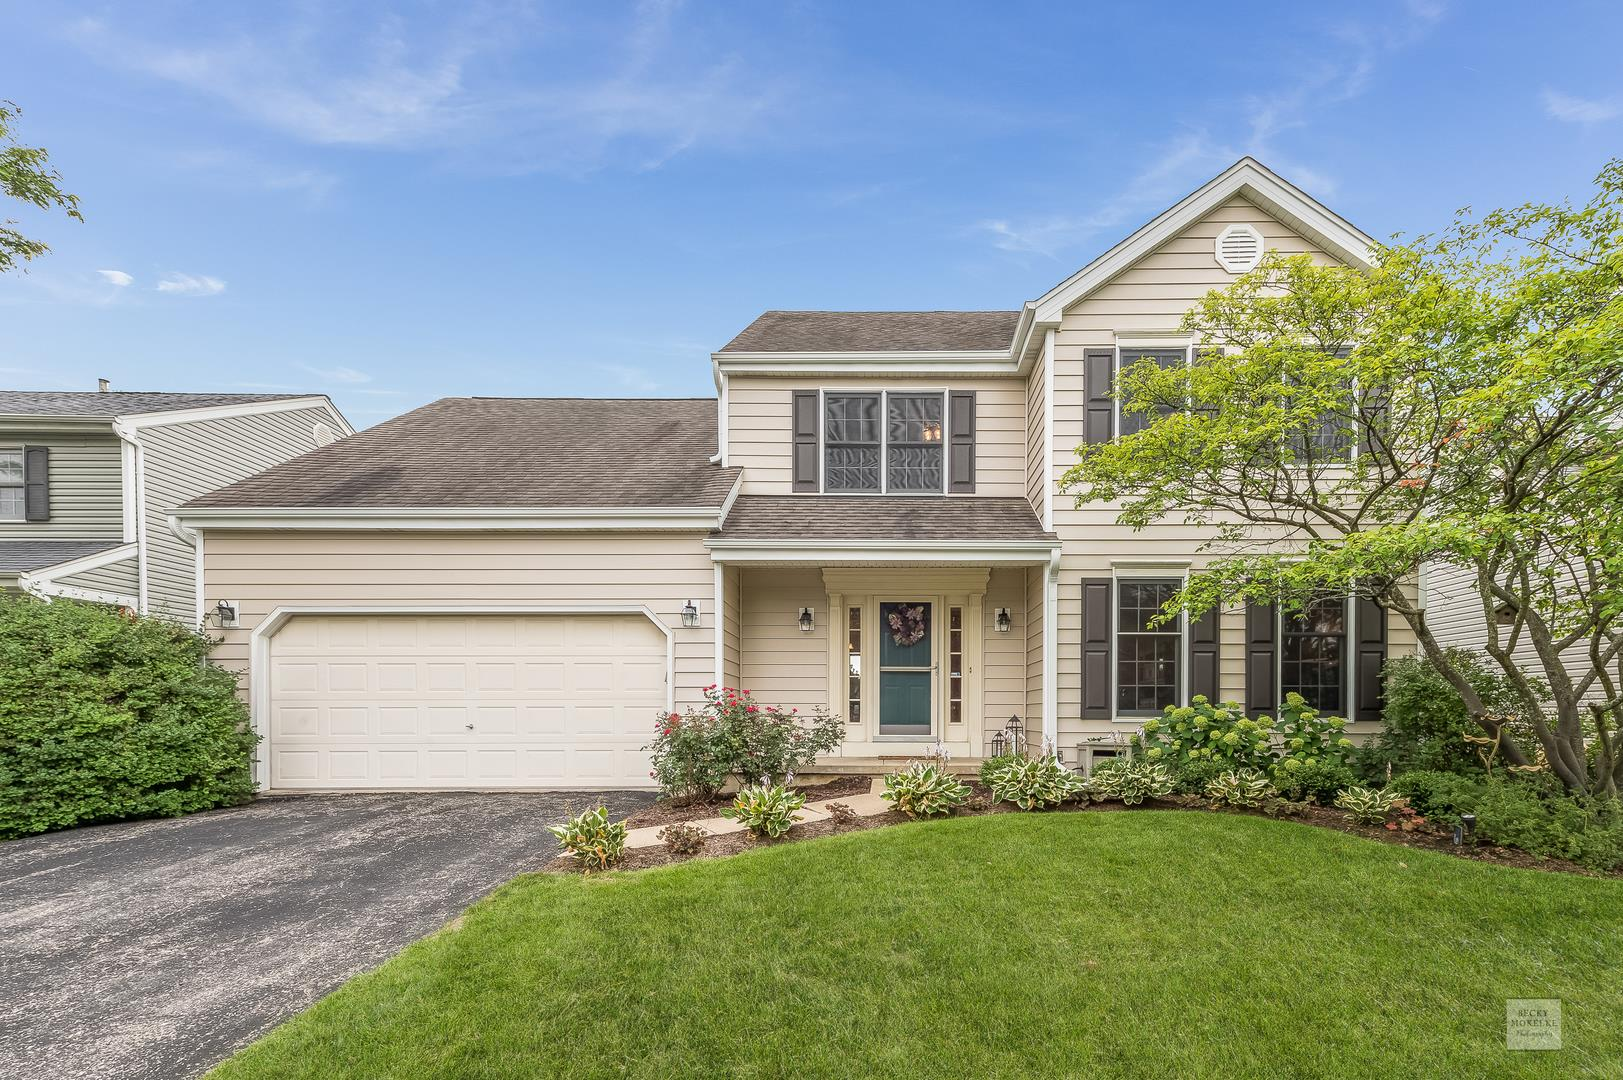 3075 Fairfield Lane, Aurora, IL 60504 - #: 10806757